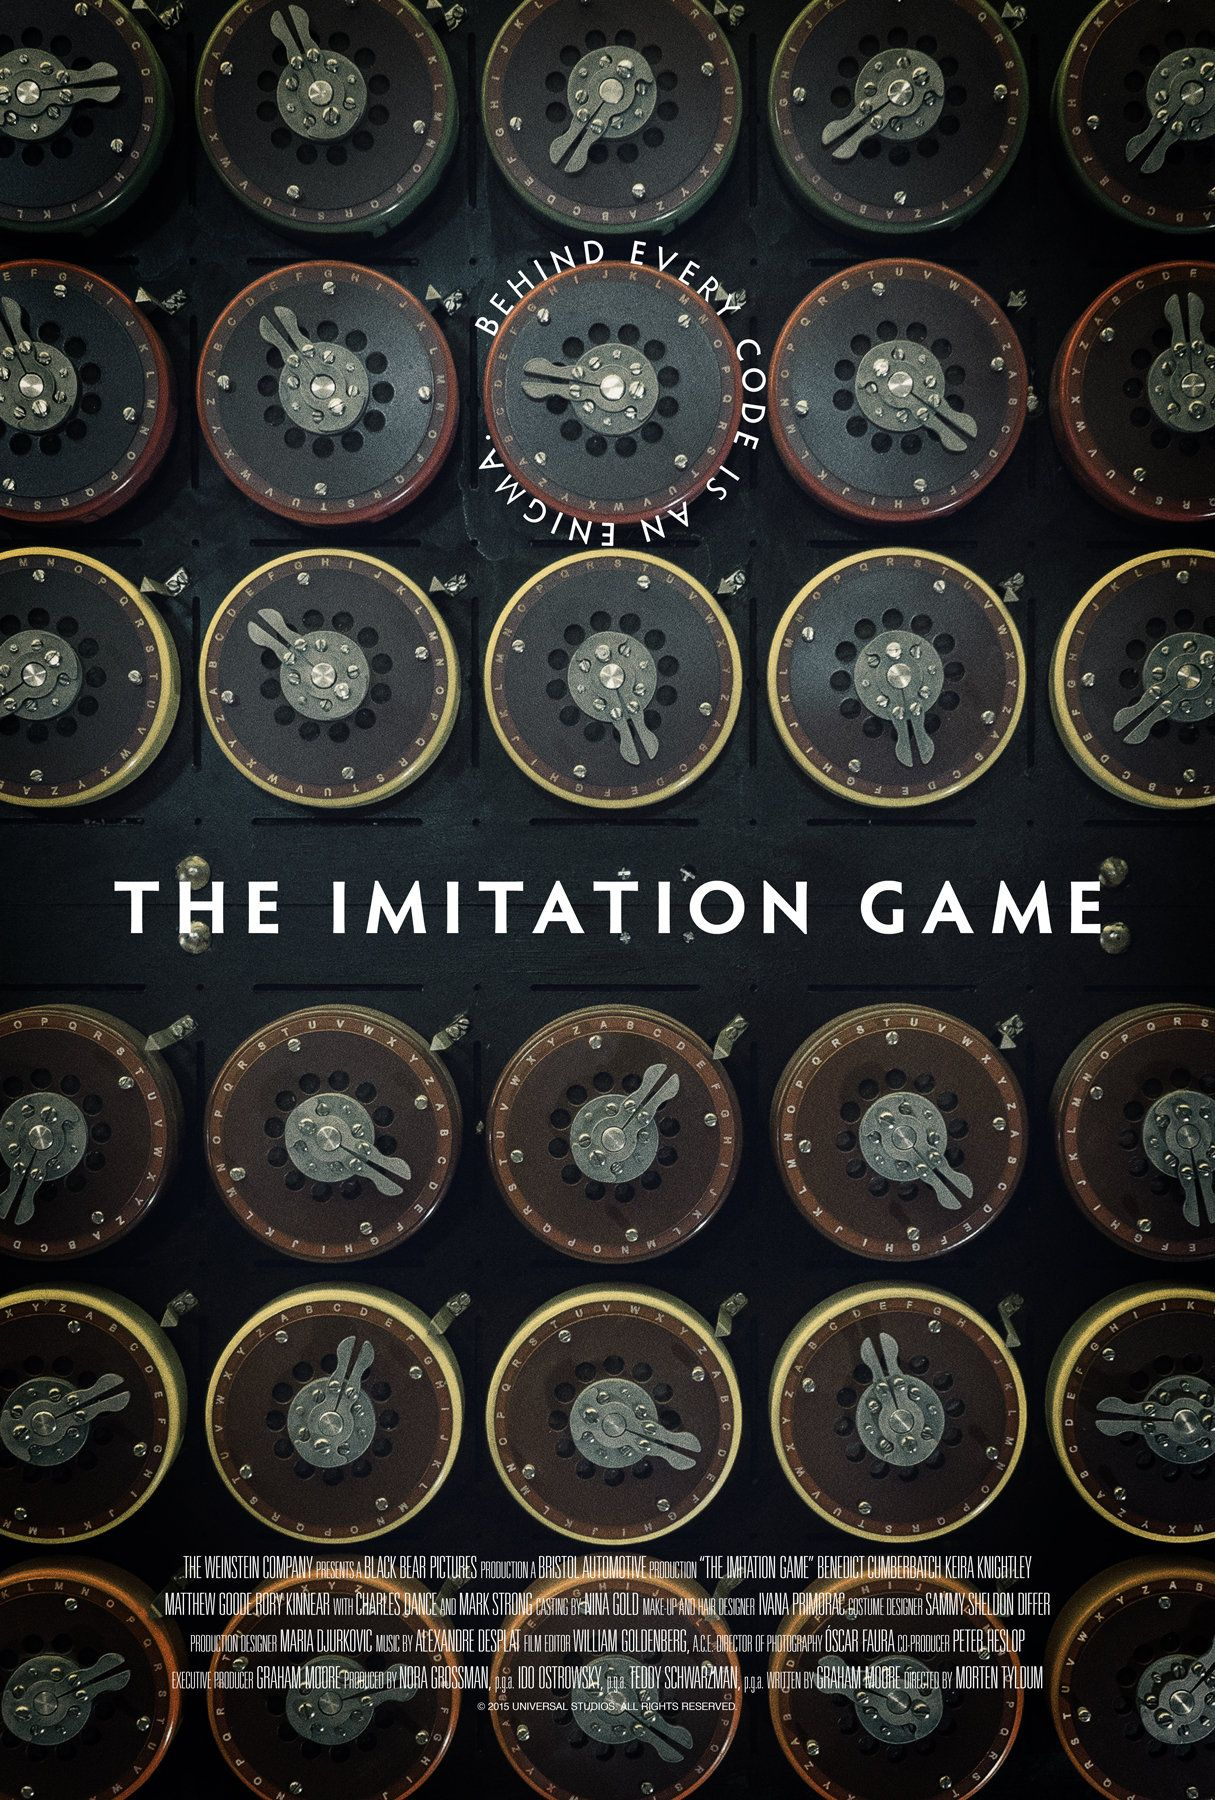 The Imitation Game 2014 HD Wallpaper From